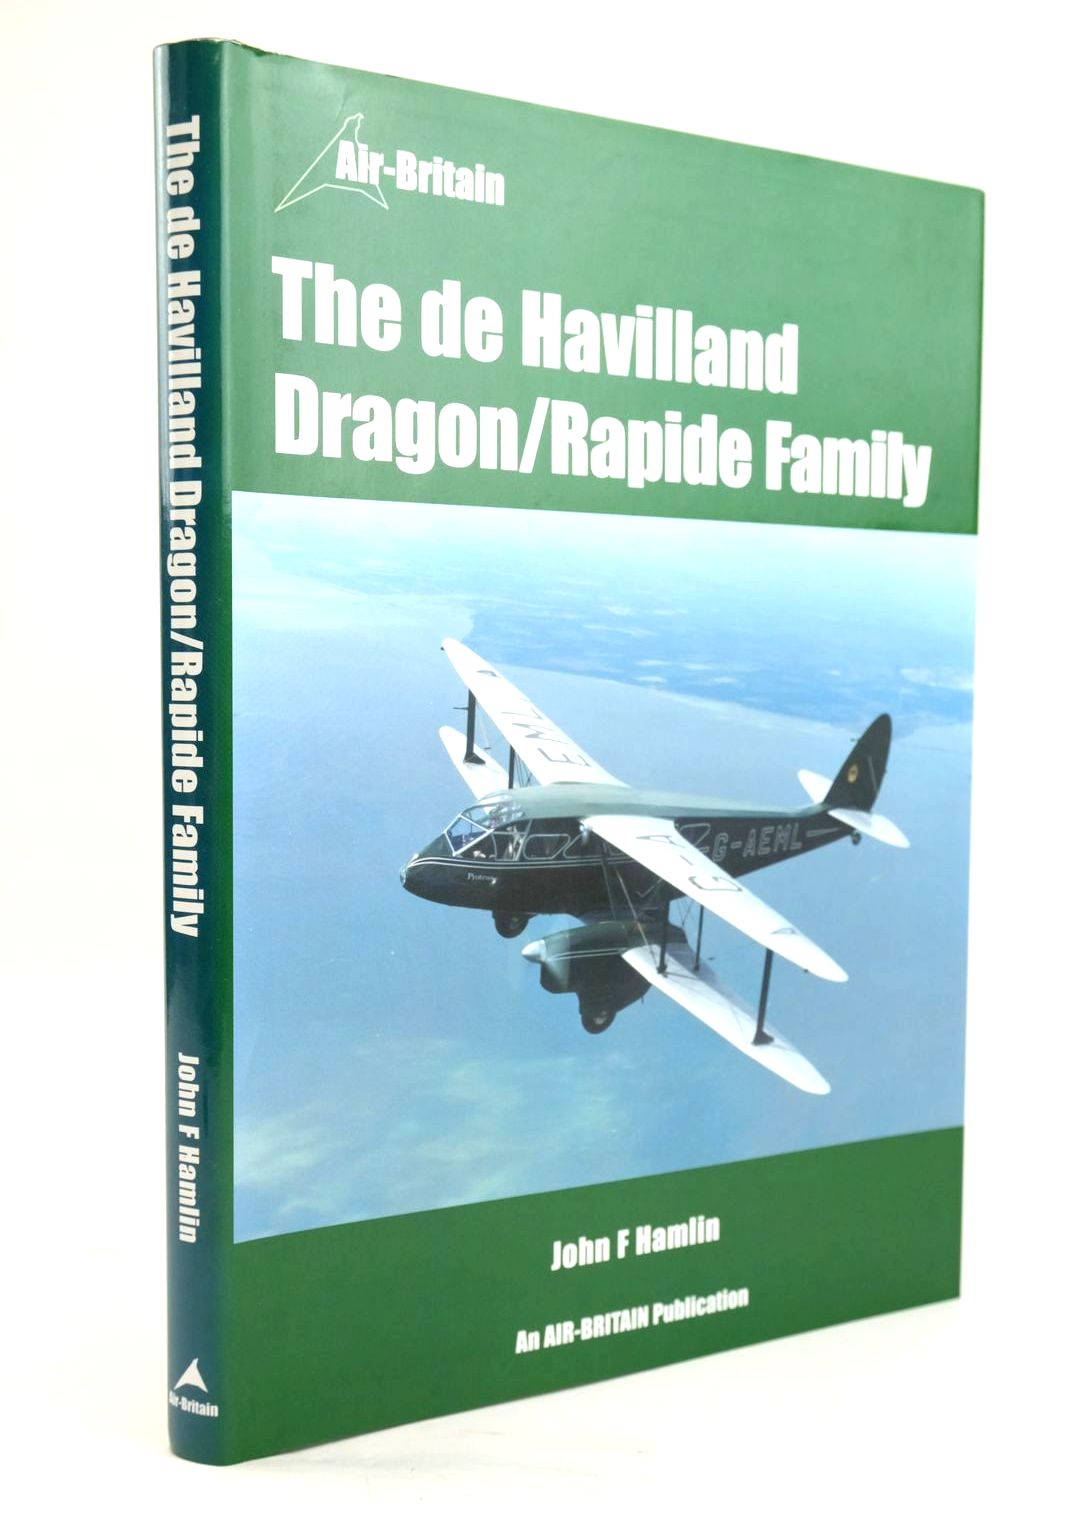 Photo of THE DE HAVILLAND DRAGON / RAPIDE FAMILY written by Hamlin, John F. published by Air-Britain (Historians) Ltd. (STOCK CODE: 1319618)  for sale by Stella & Rose's Books